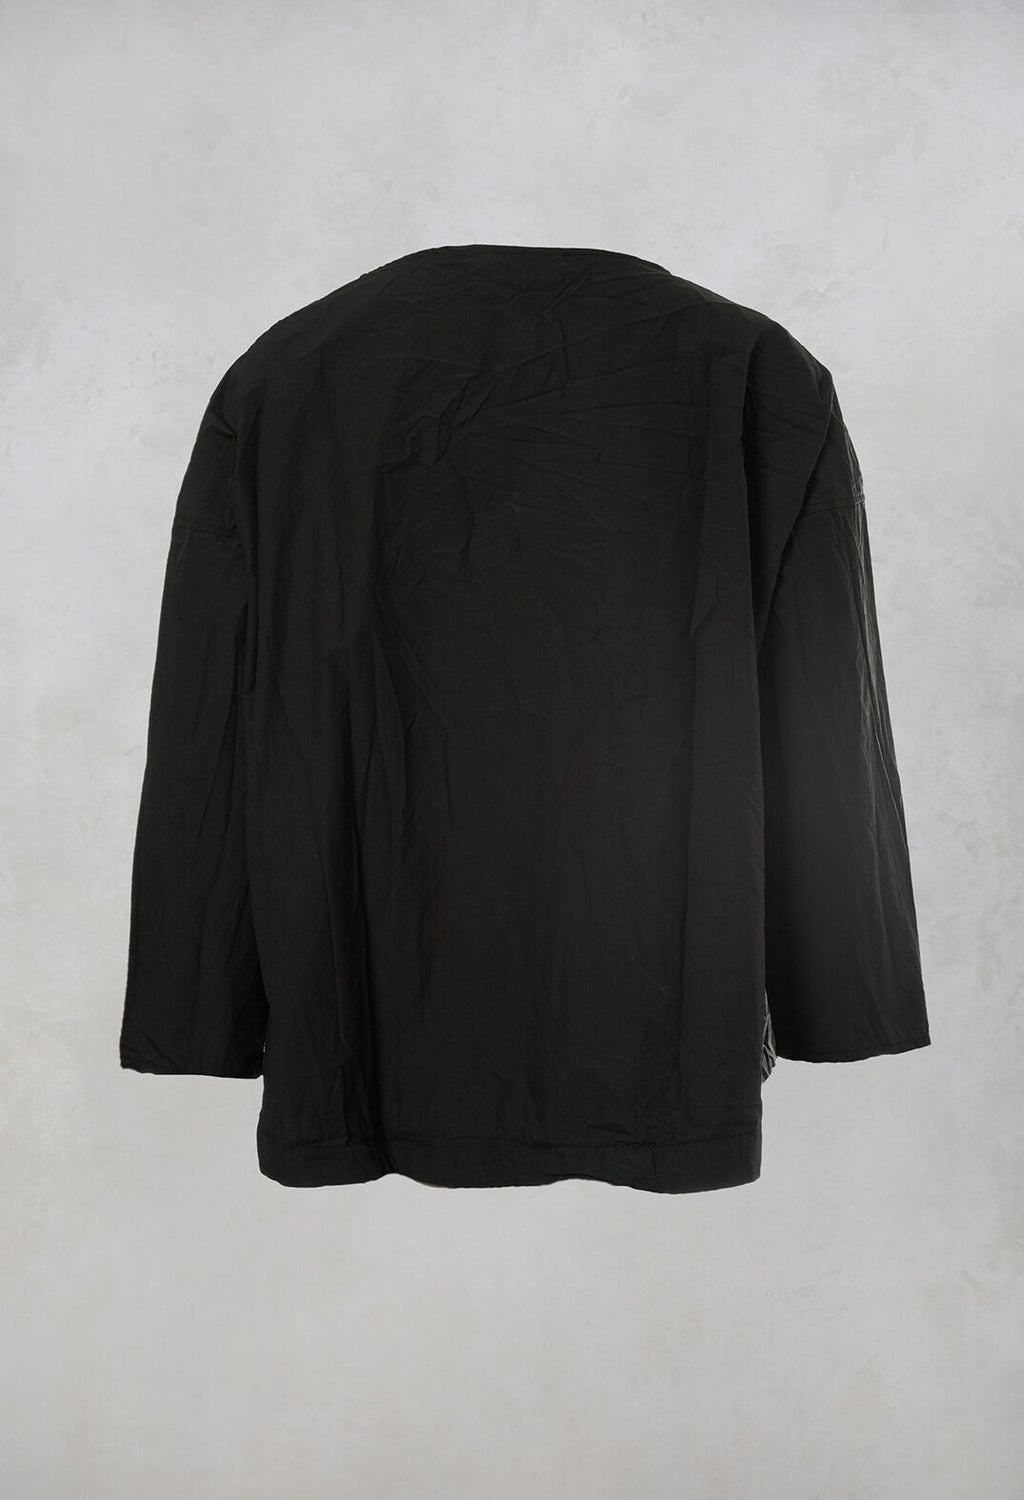 Blouse in Black